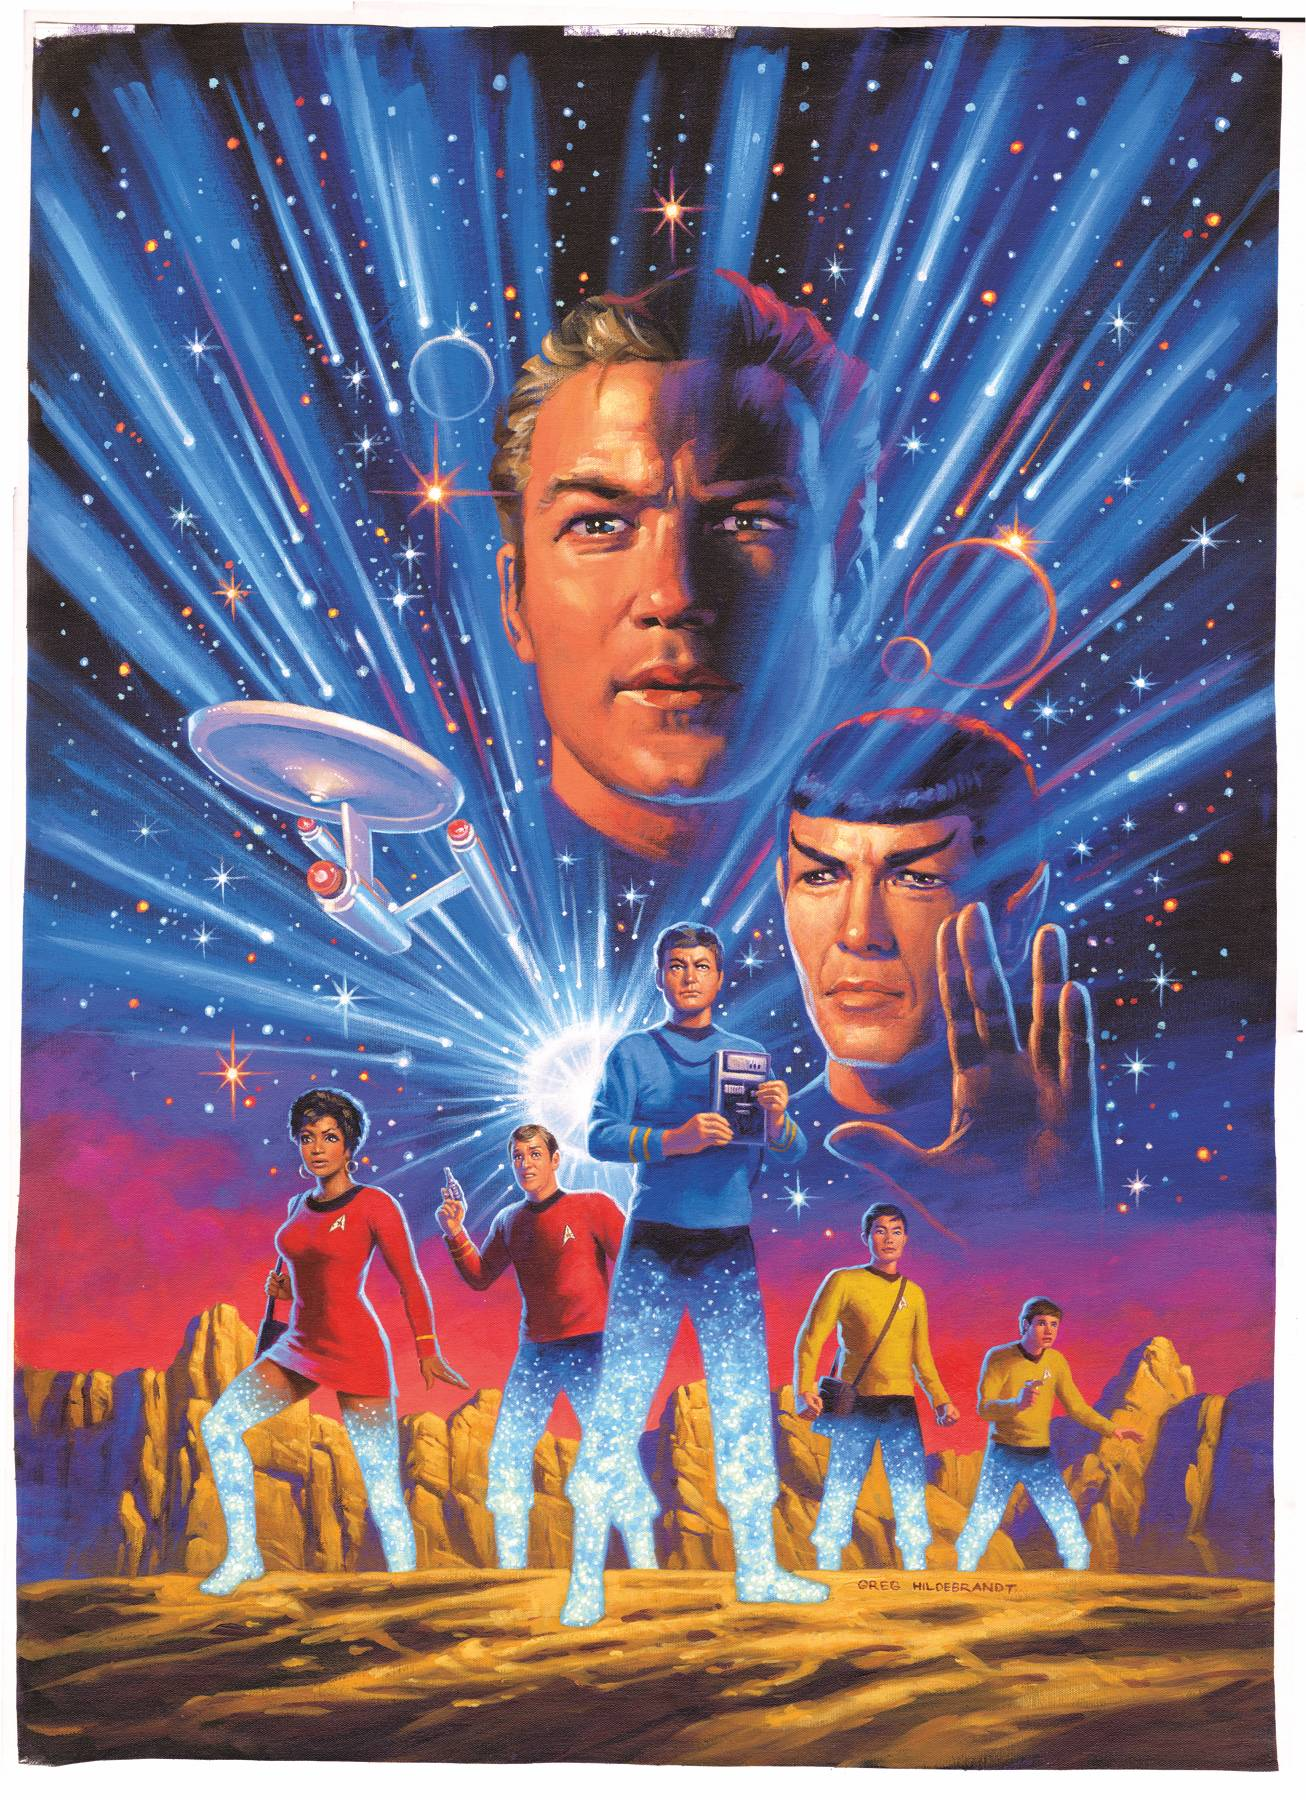 04/24/2019 STAR TREK YEAR FIVE #1 HILDABRANDT